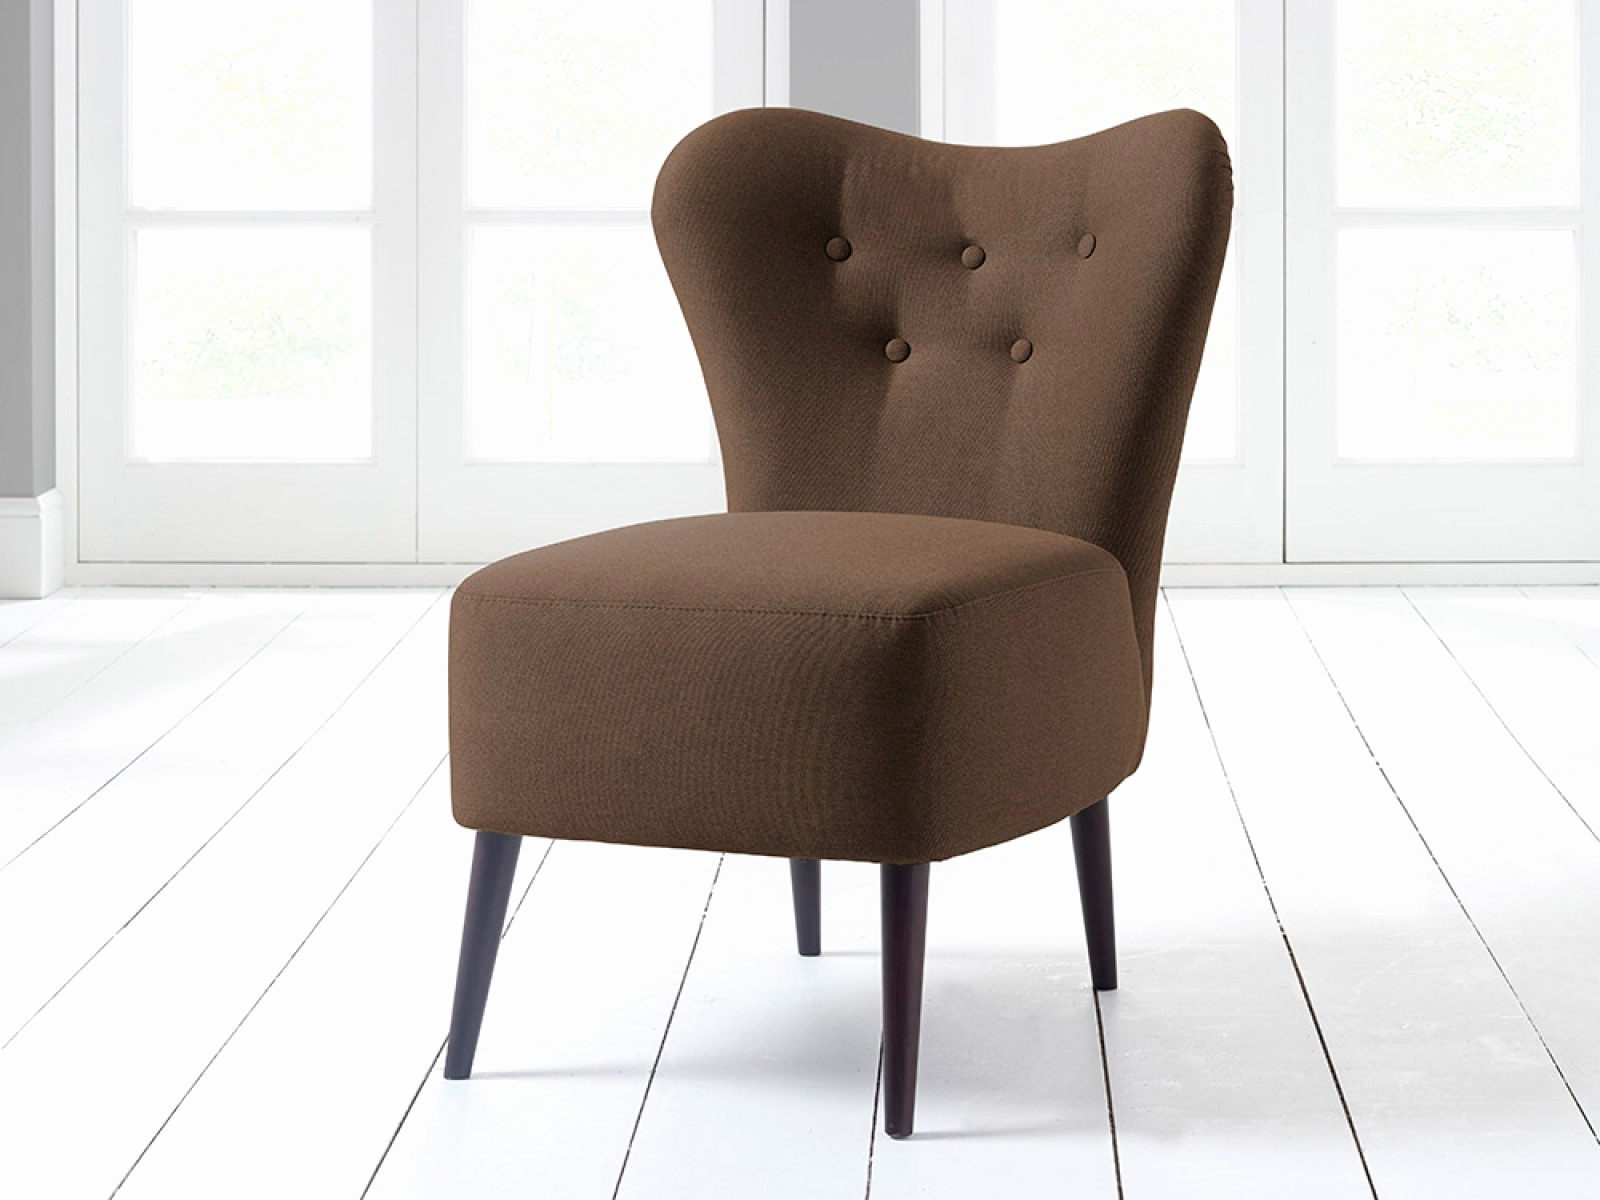 Chair Very Small Armchairs New Bedroom Marvelous Enormous Armchair For  Modern Weird Chairs Upholstered Awesome Crazy Desk Unusual Dining Furniture  Best